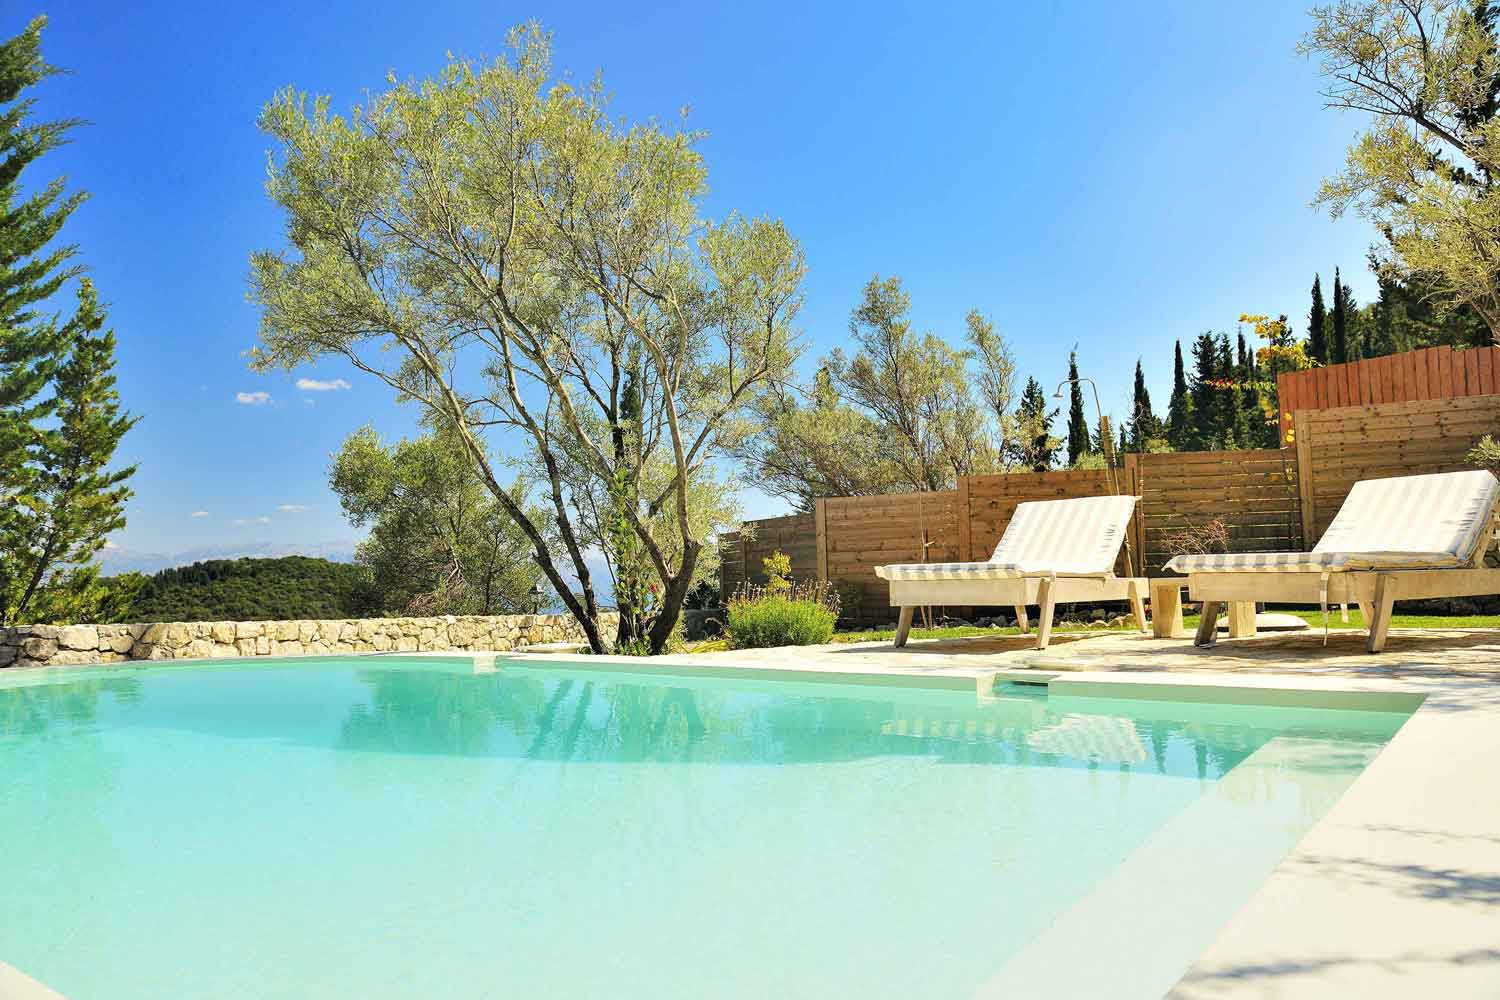 private pool villa - accommodation, amazing view from pool